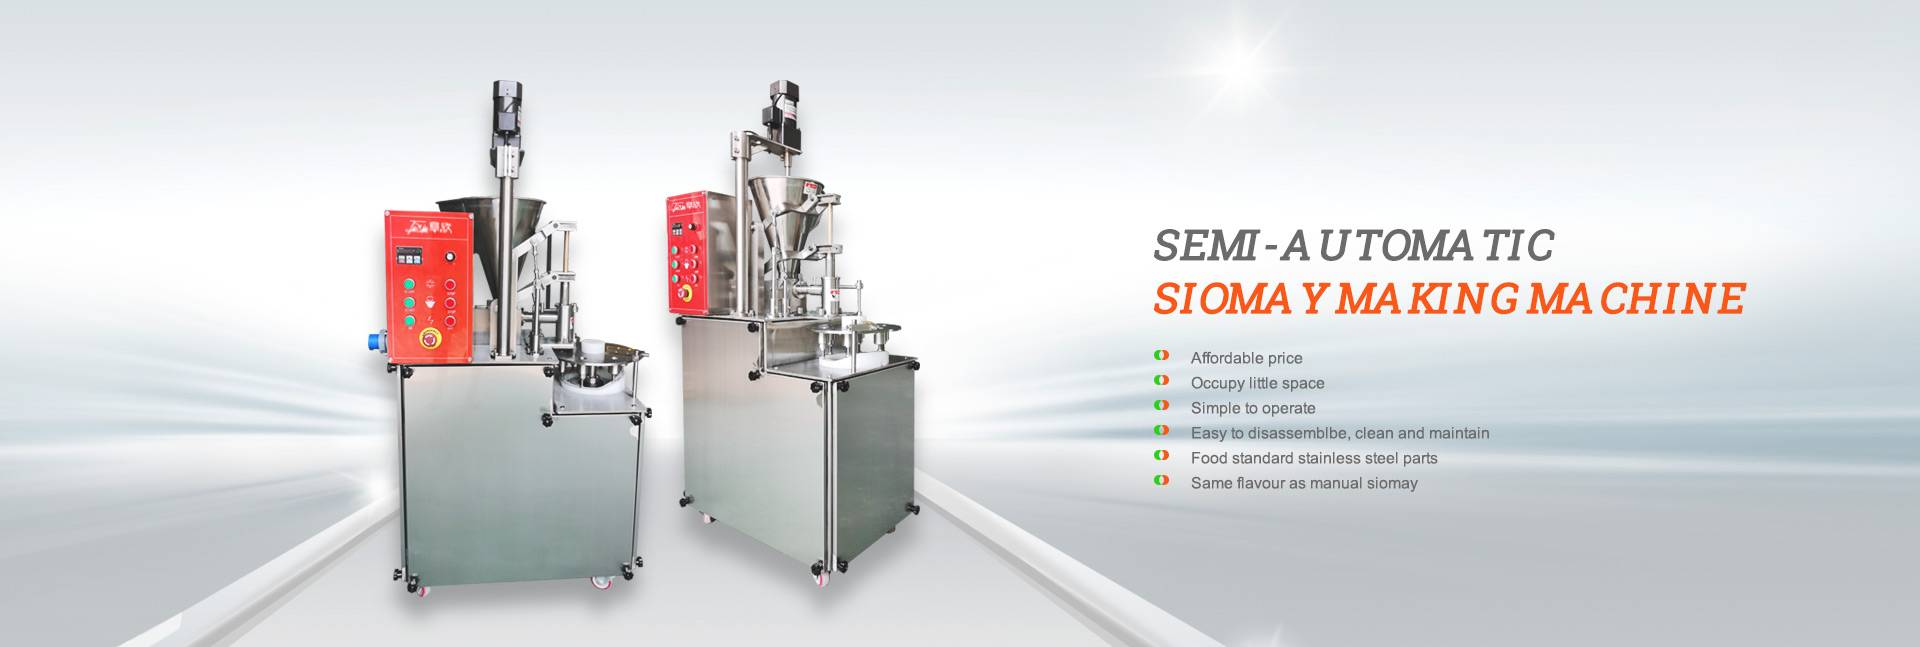 siomay making machine3